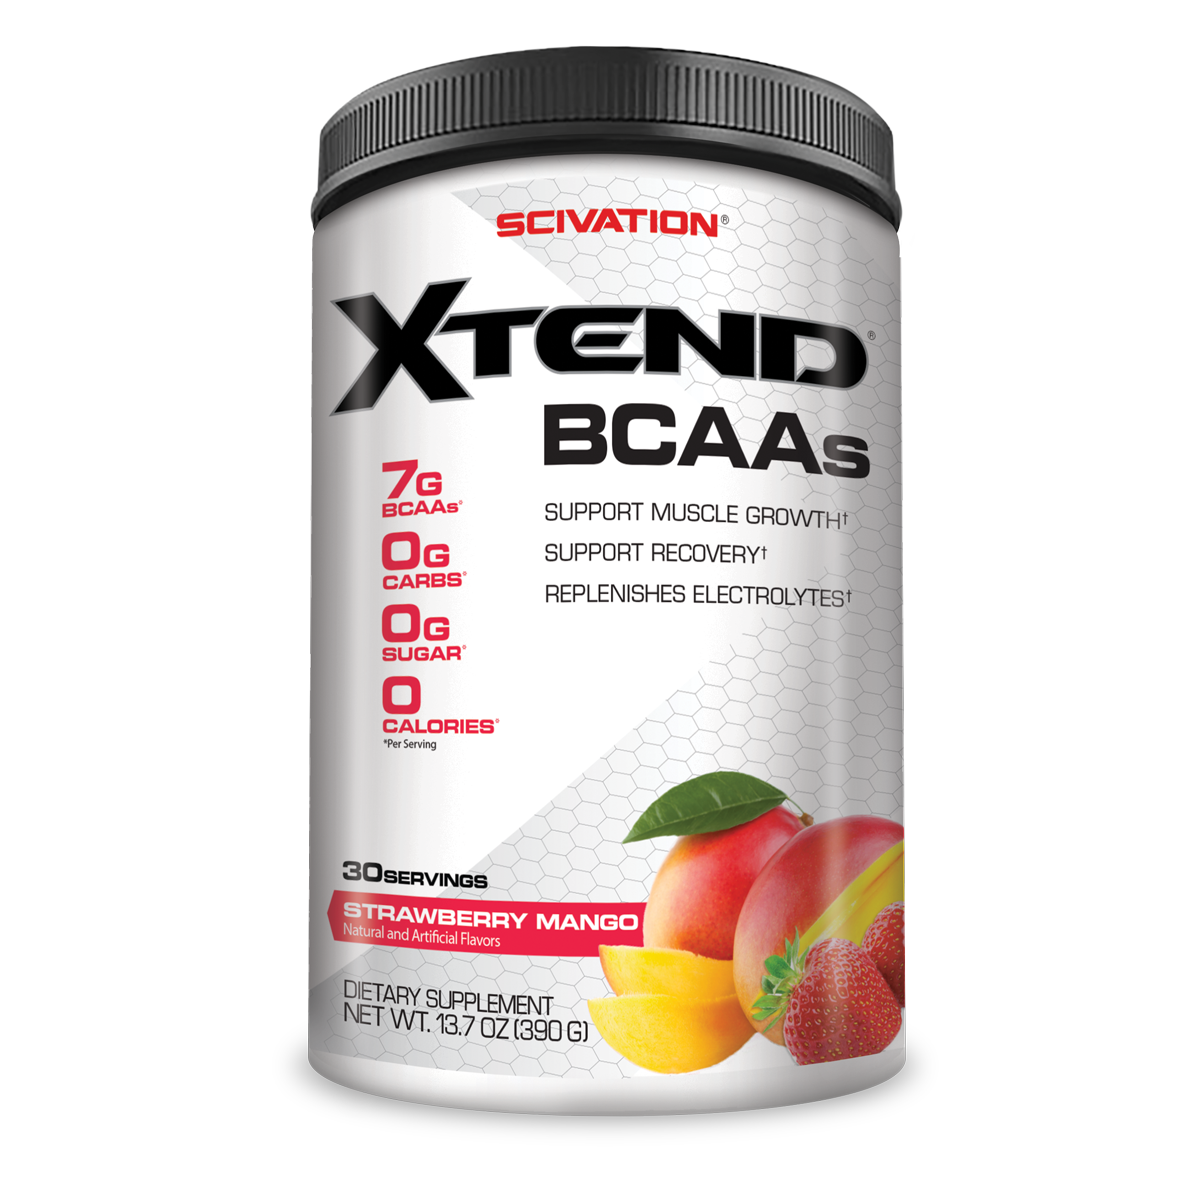 Scivation Xtend BCAA Powder, Strawberry Mango, 30 Servings